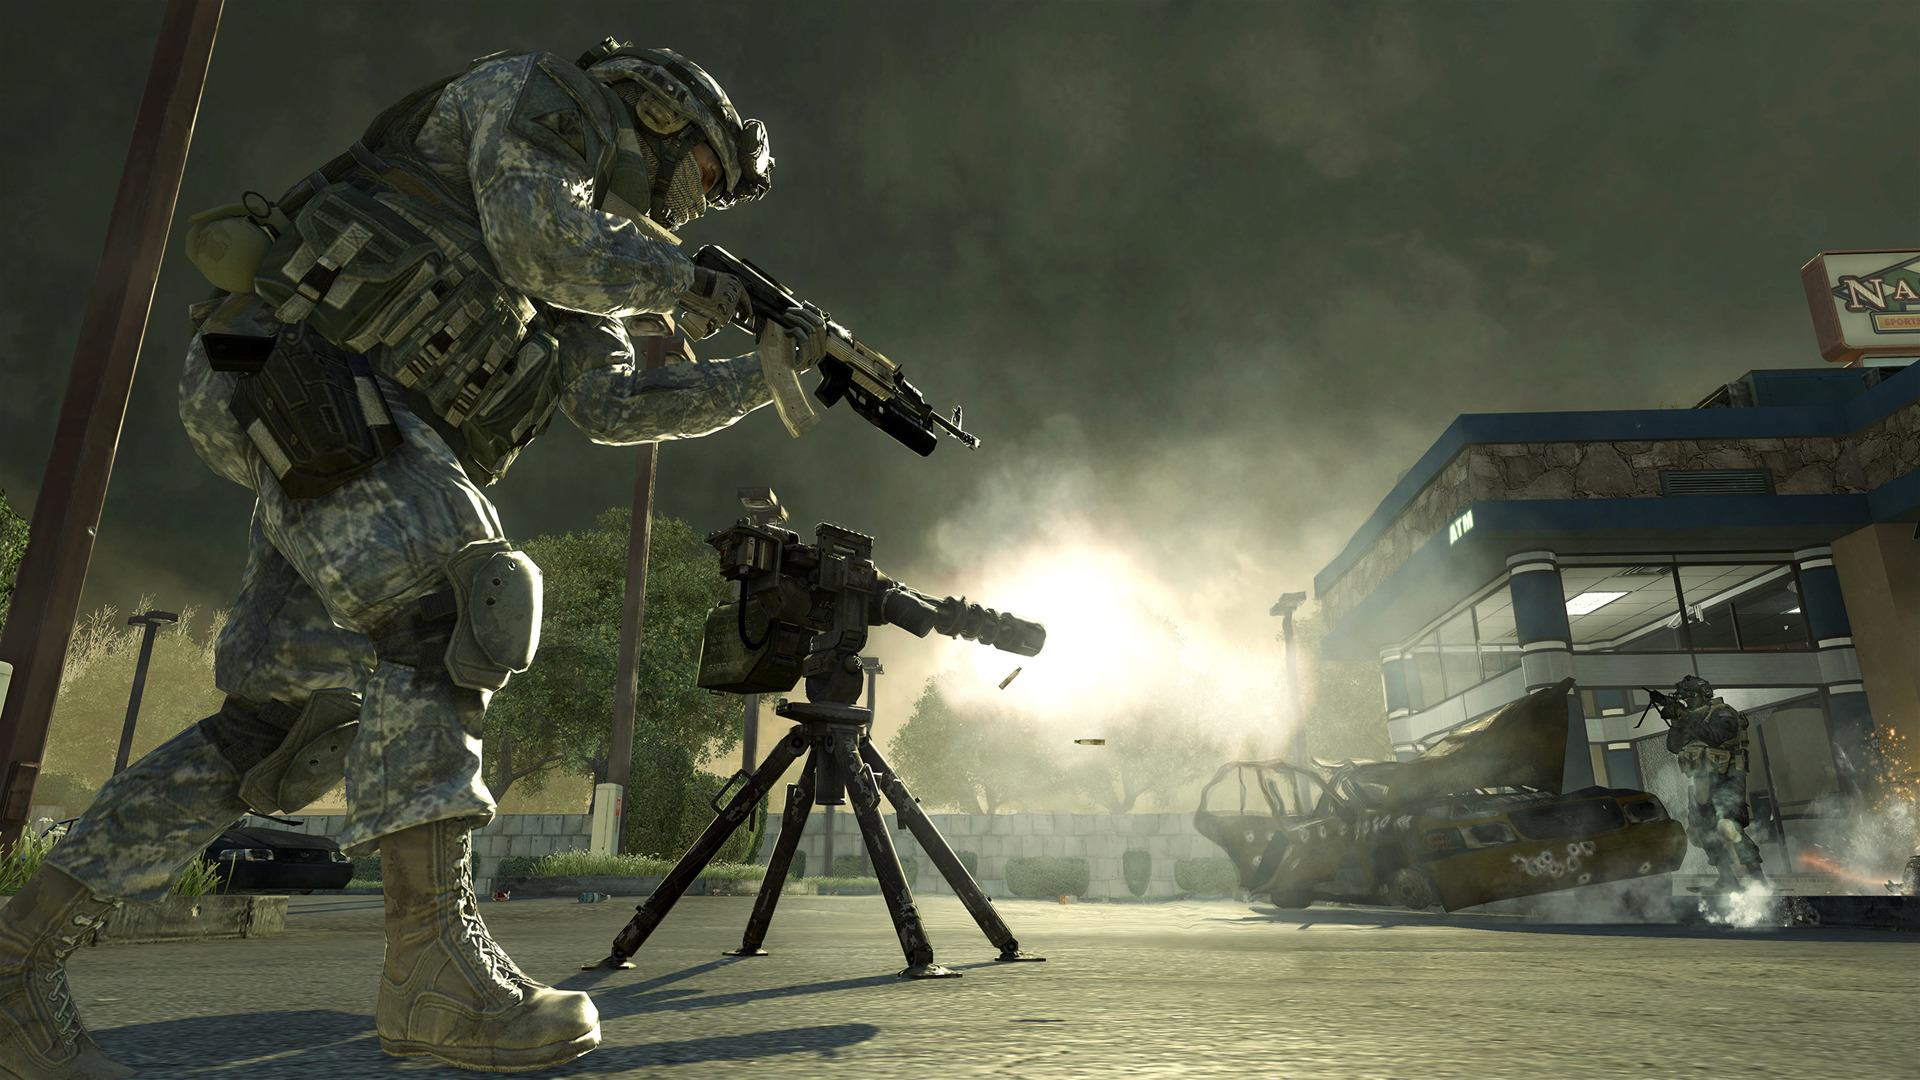 Call of Duty Modern Warfare - Watch the Trailer and Preorder Now